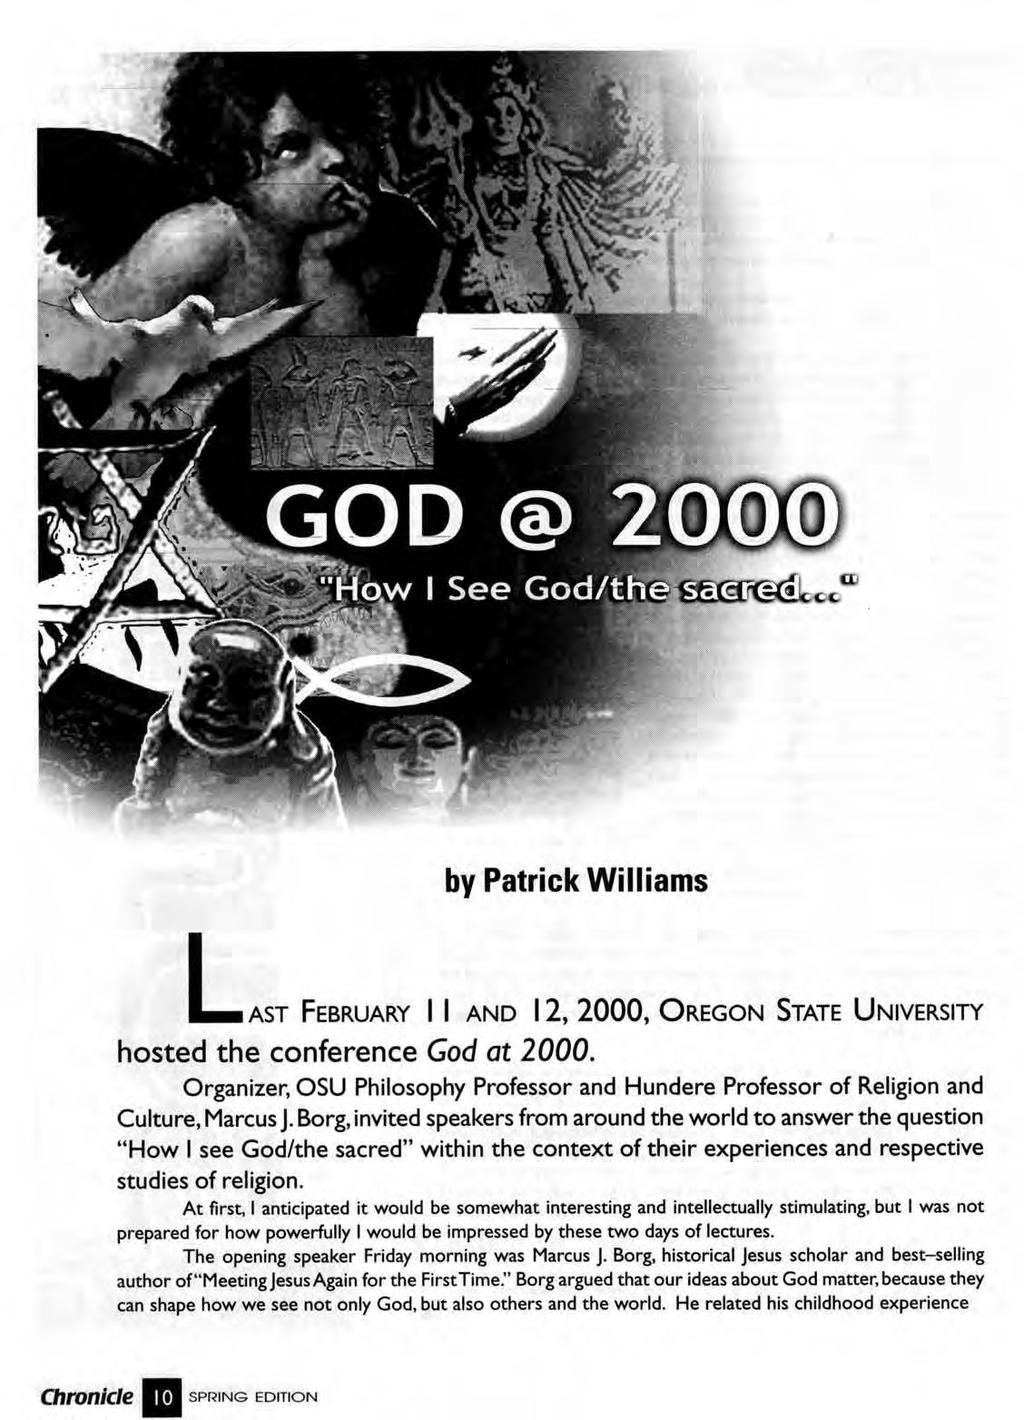 by Patrick Williams AST FEBRUARY I I AND I 2, 2000, OREGON STATE UNIVERSITY hosted the conference God at 2000.